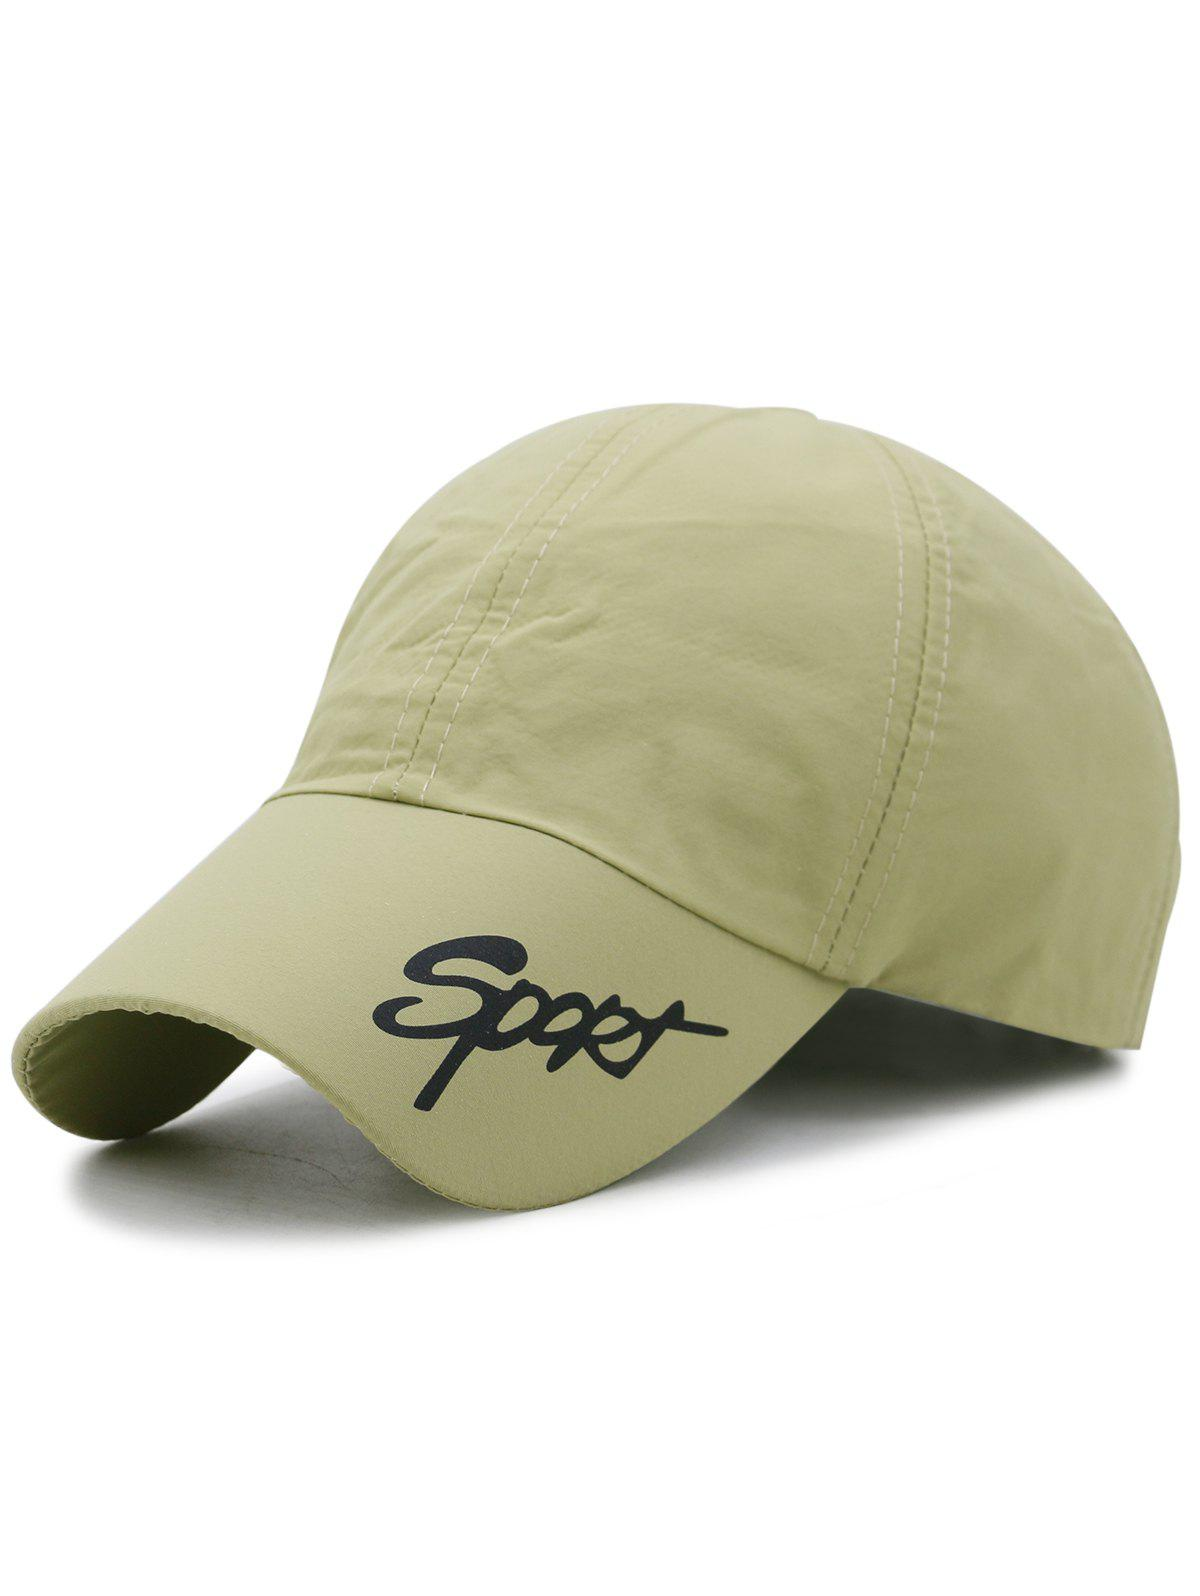 Affordable Outdoor SPORT Printed Graphic Hat